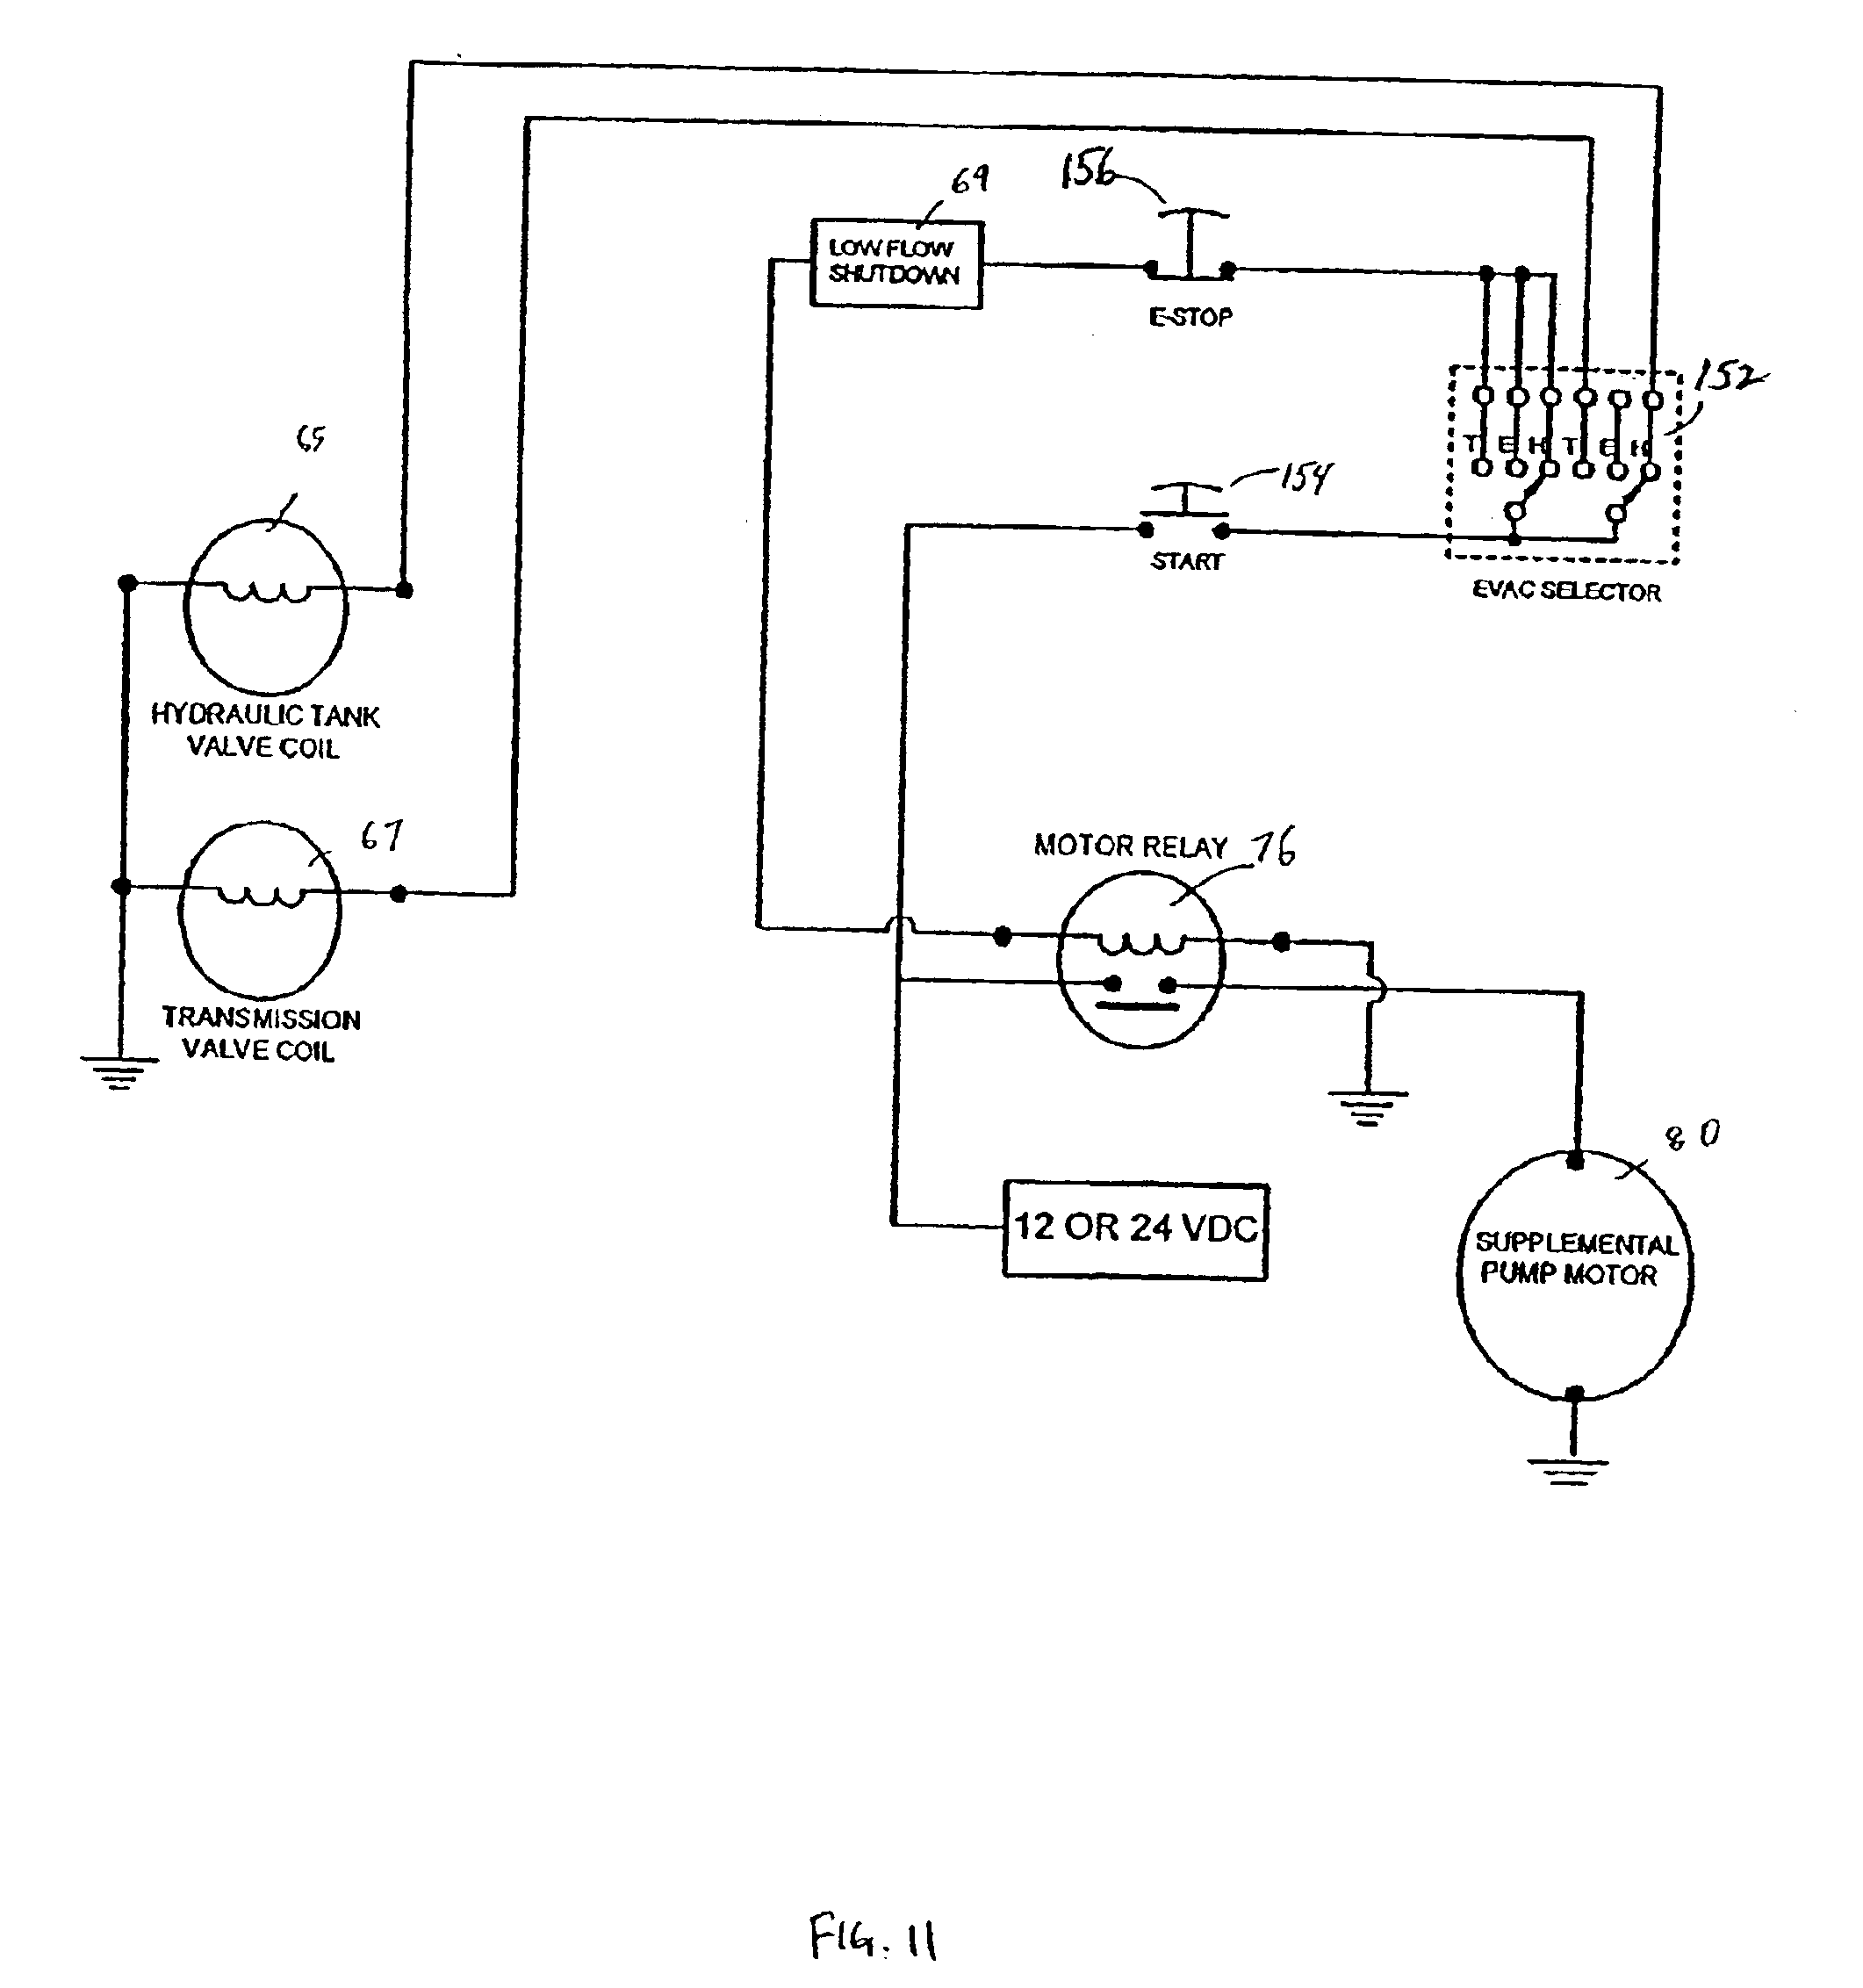 United Pacific Turn Signal Wiring Diagram Electrical Images Gallery